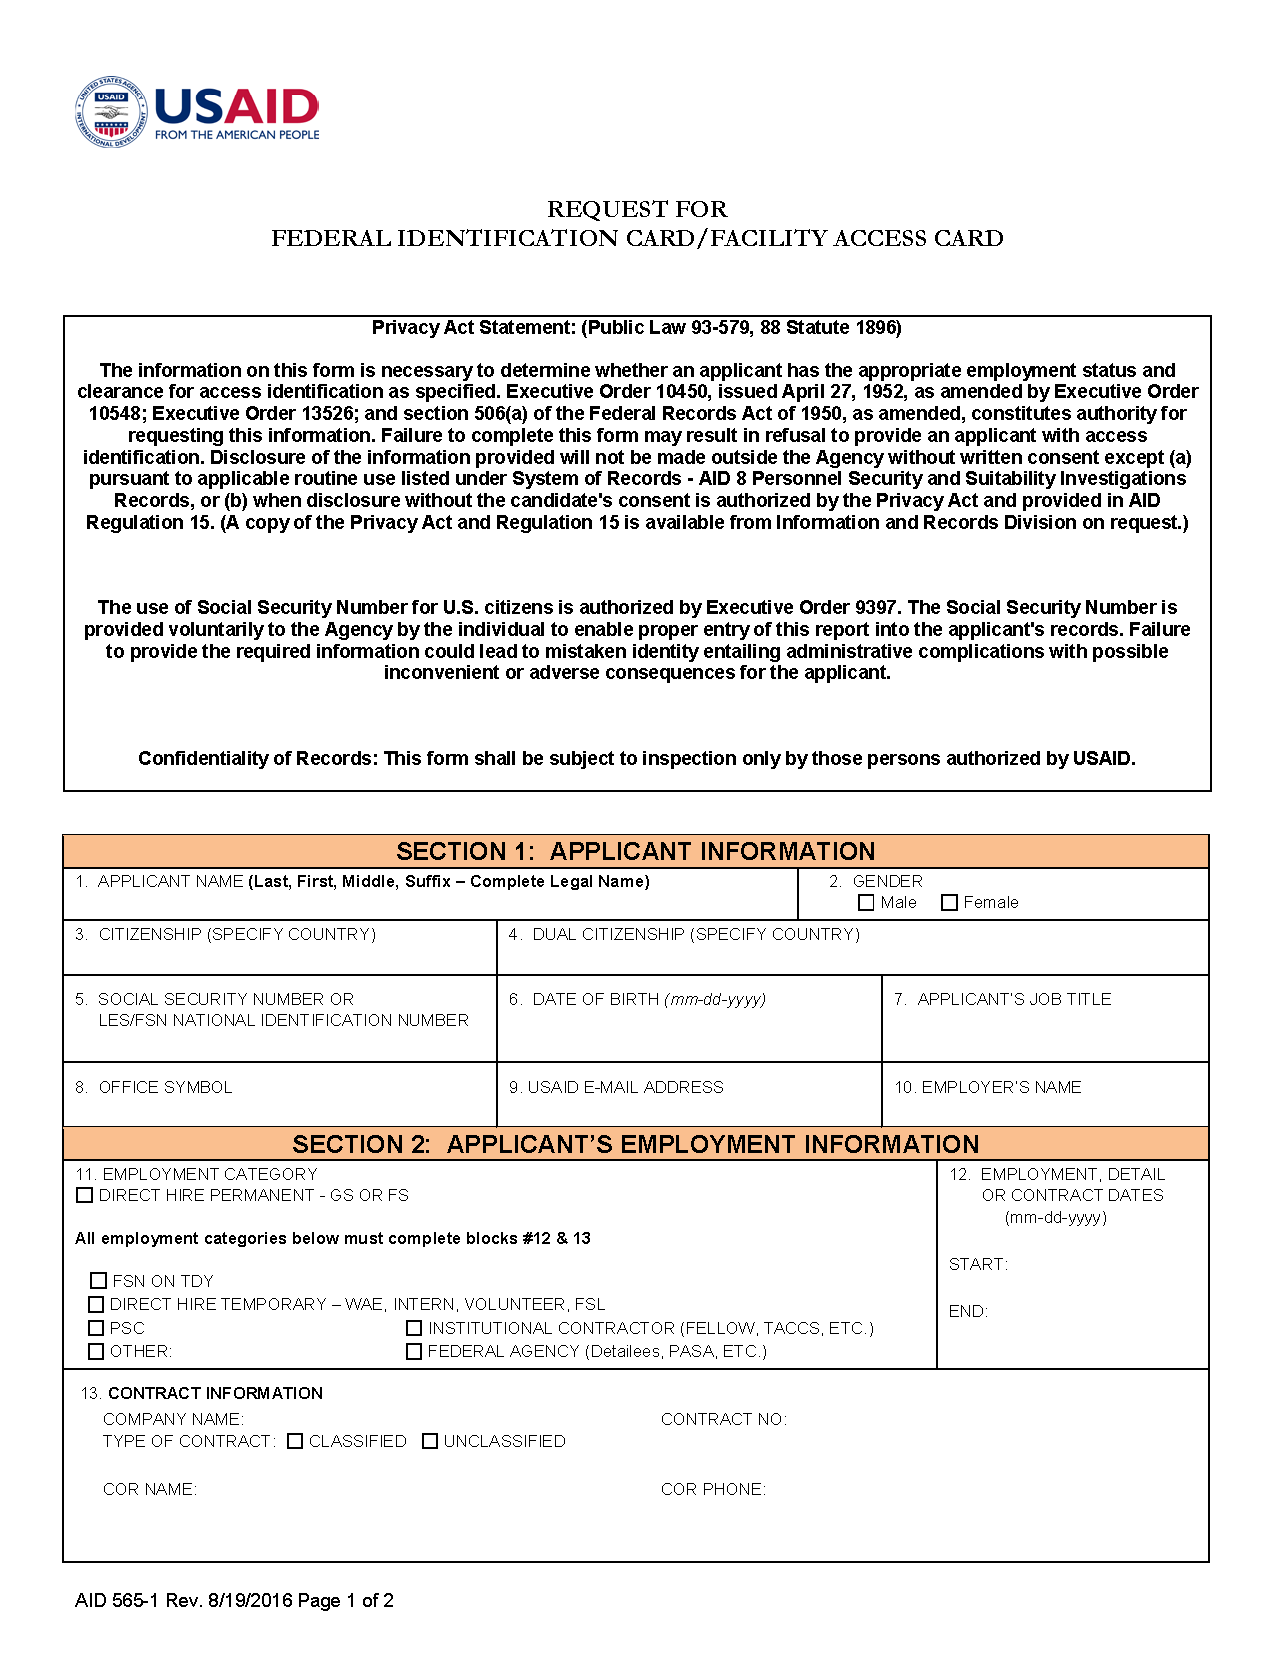 AID 565-1 (Request for Federal Identification Card / Facility Access Card)